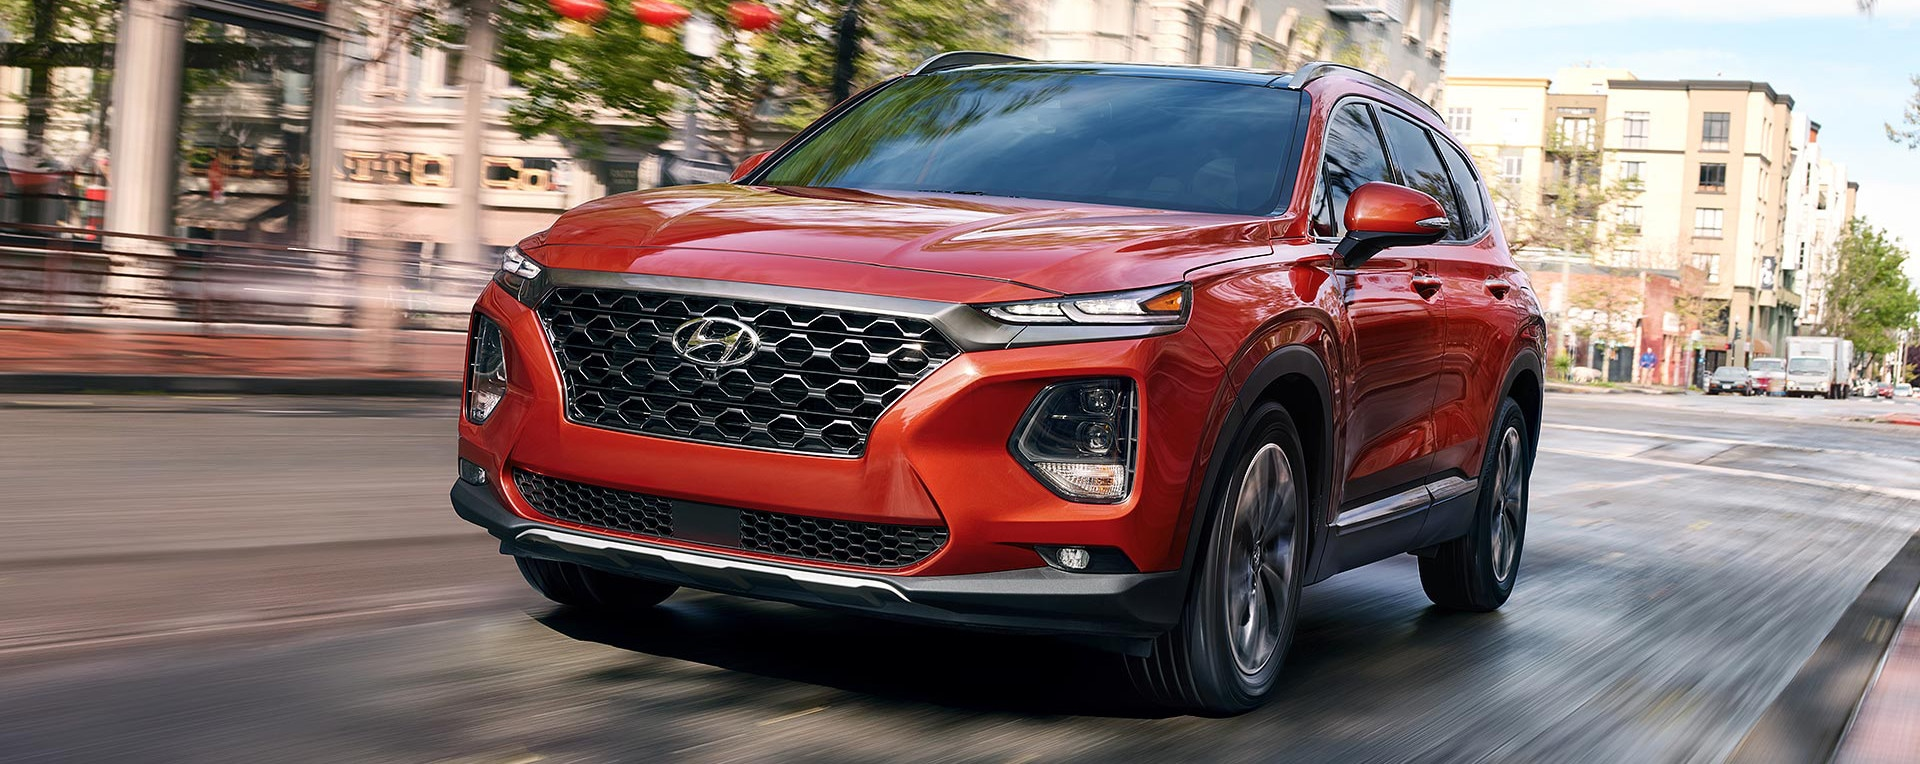 2019 Hyundai Santa Fe on street